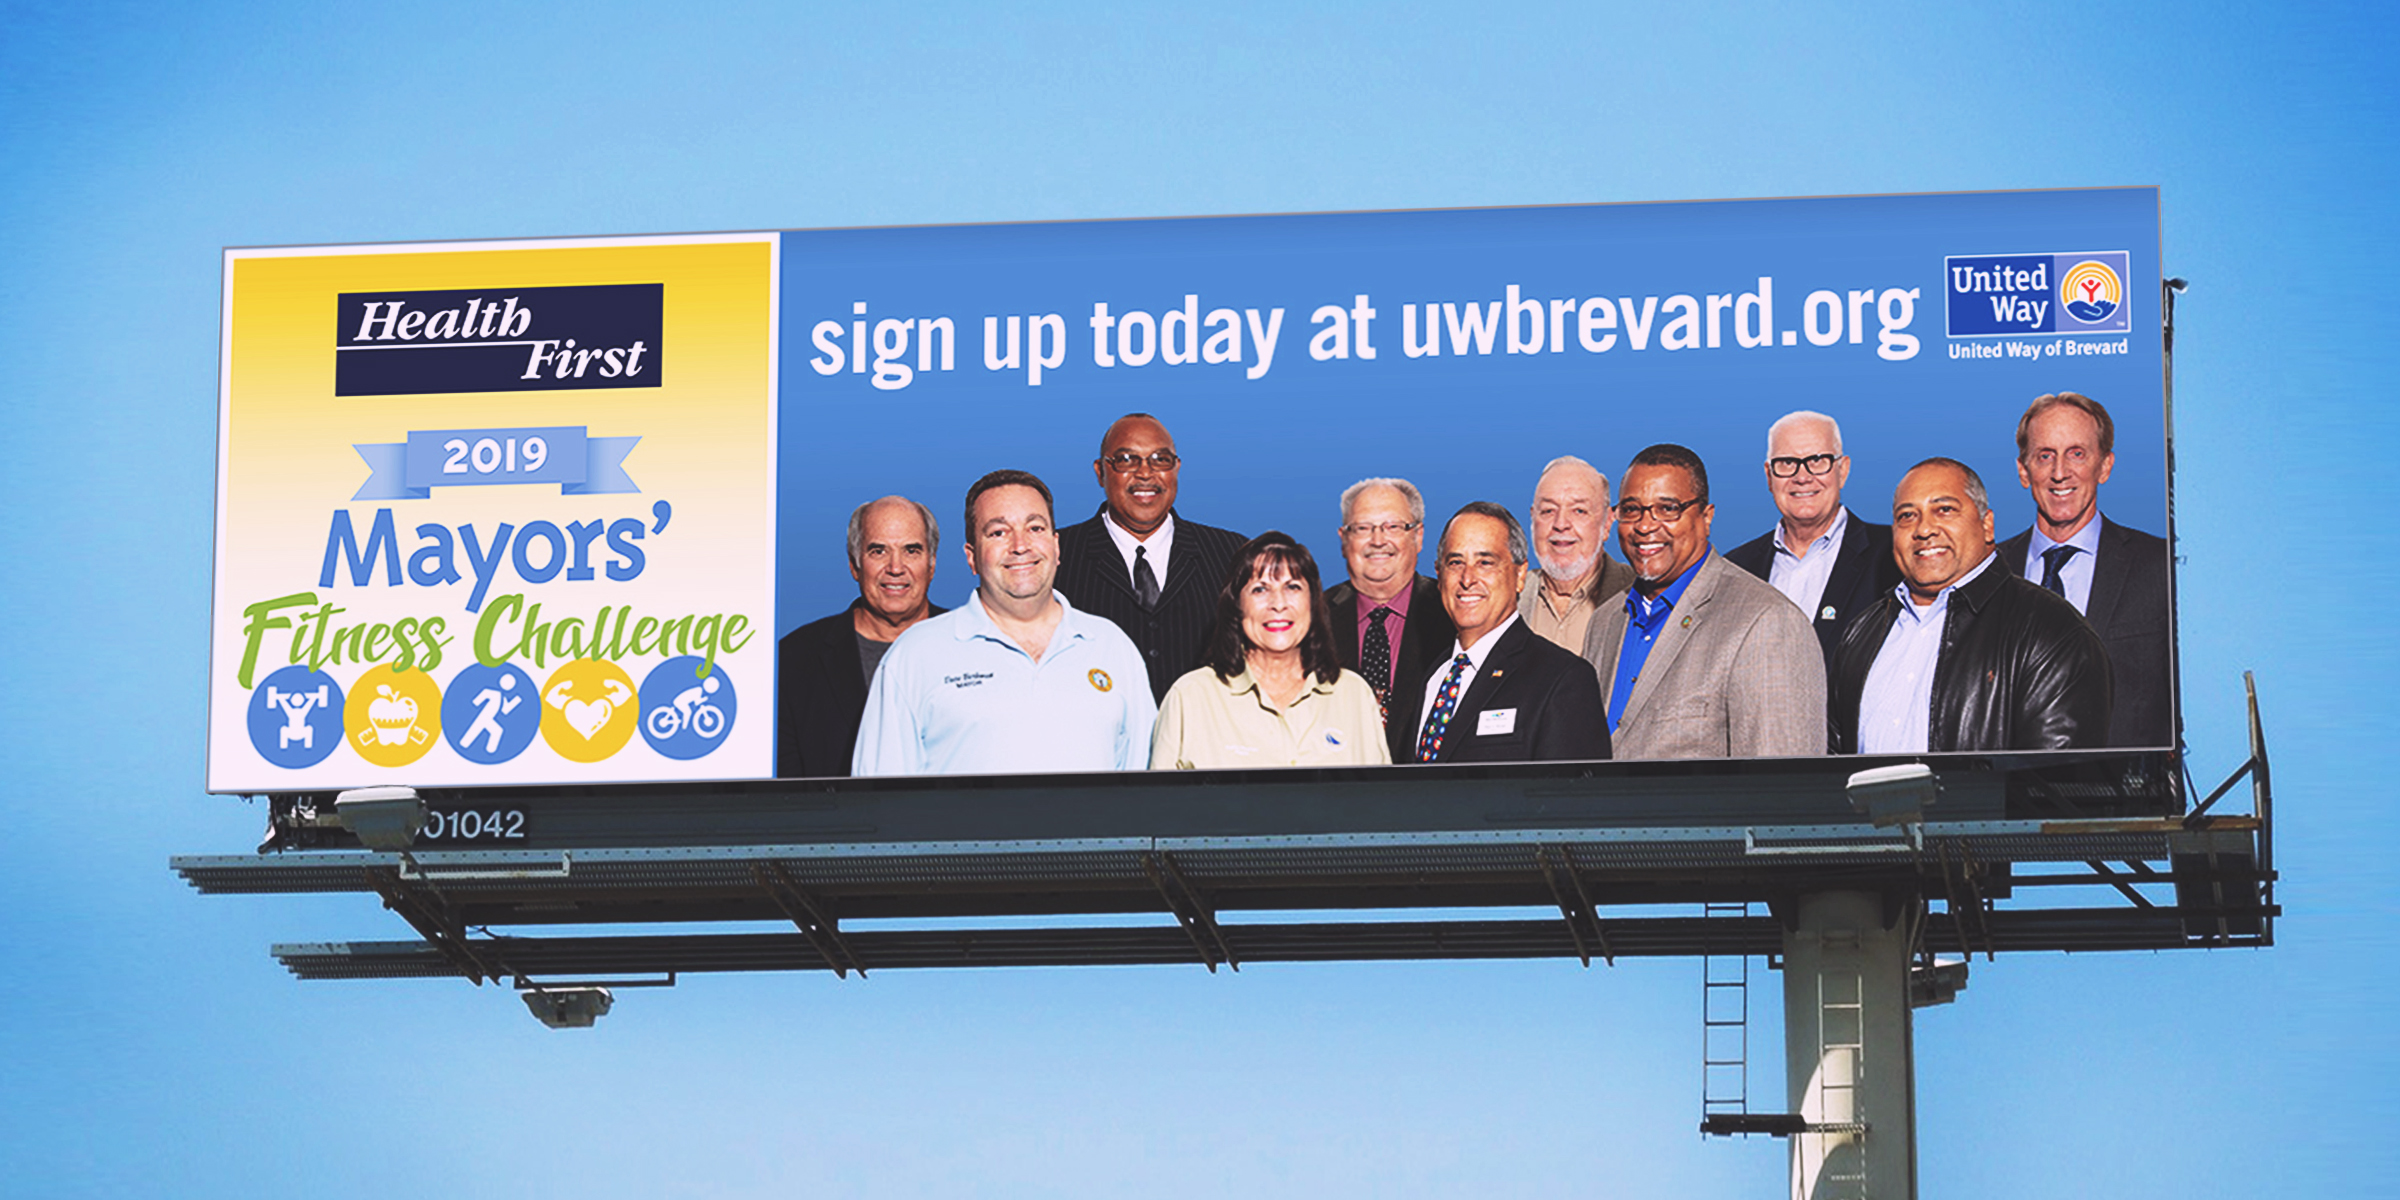 United way fitness billboard